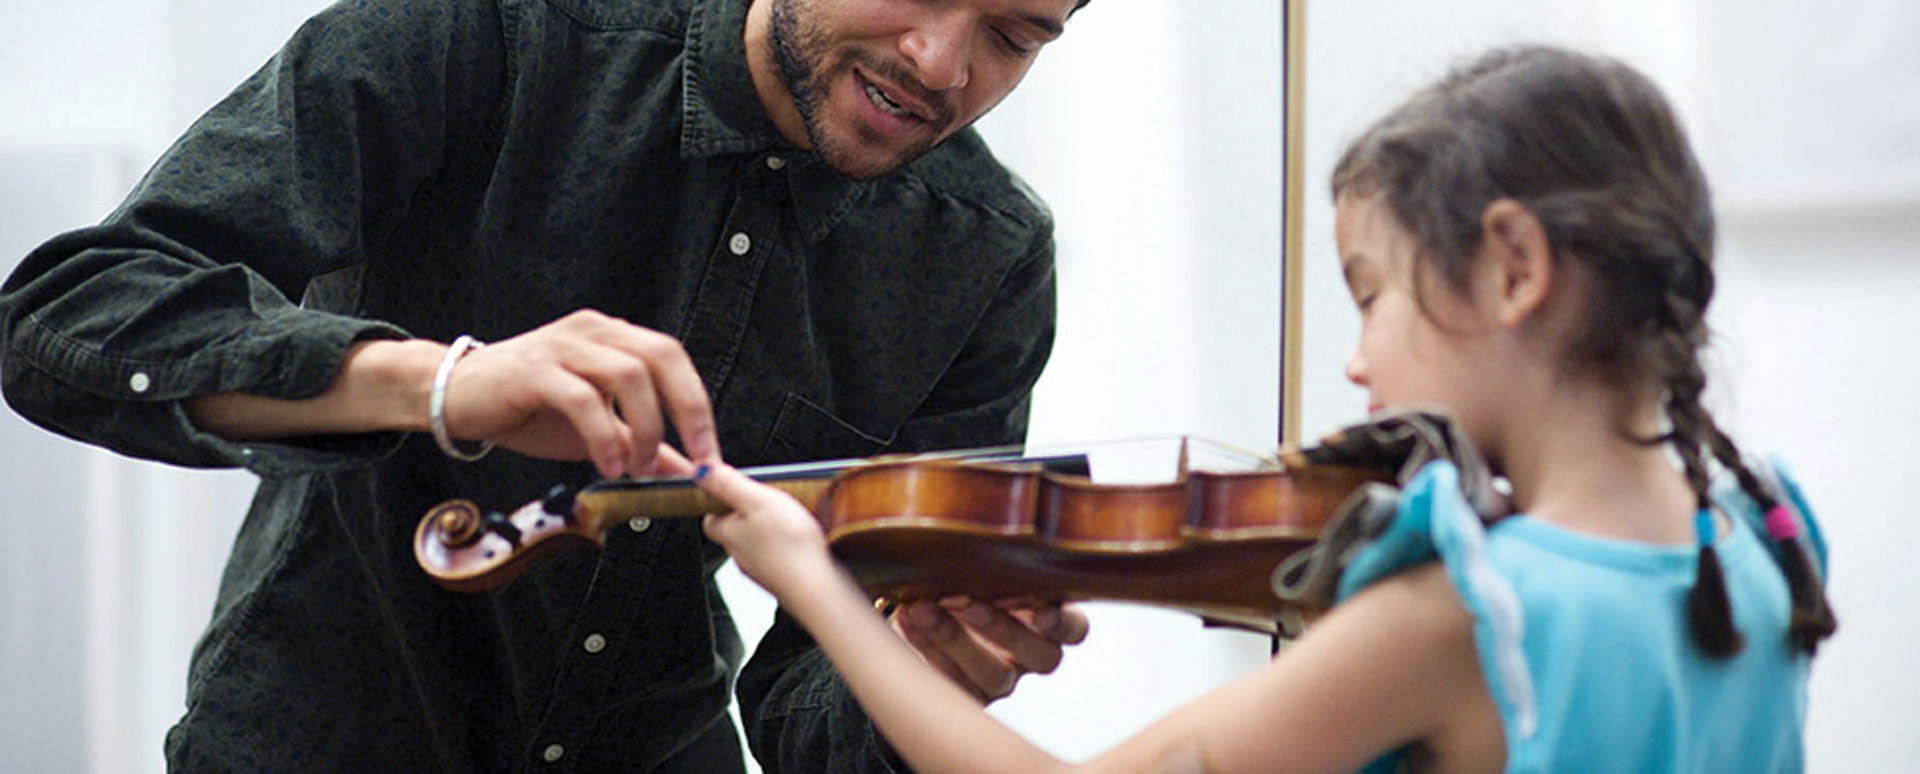 Child's violin lesson